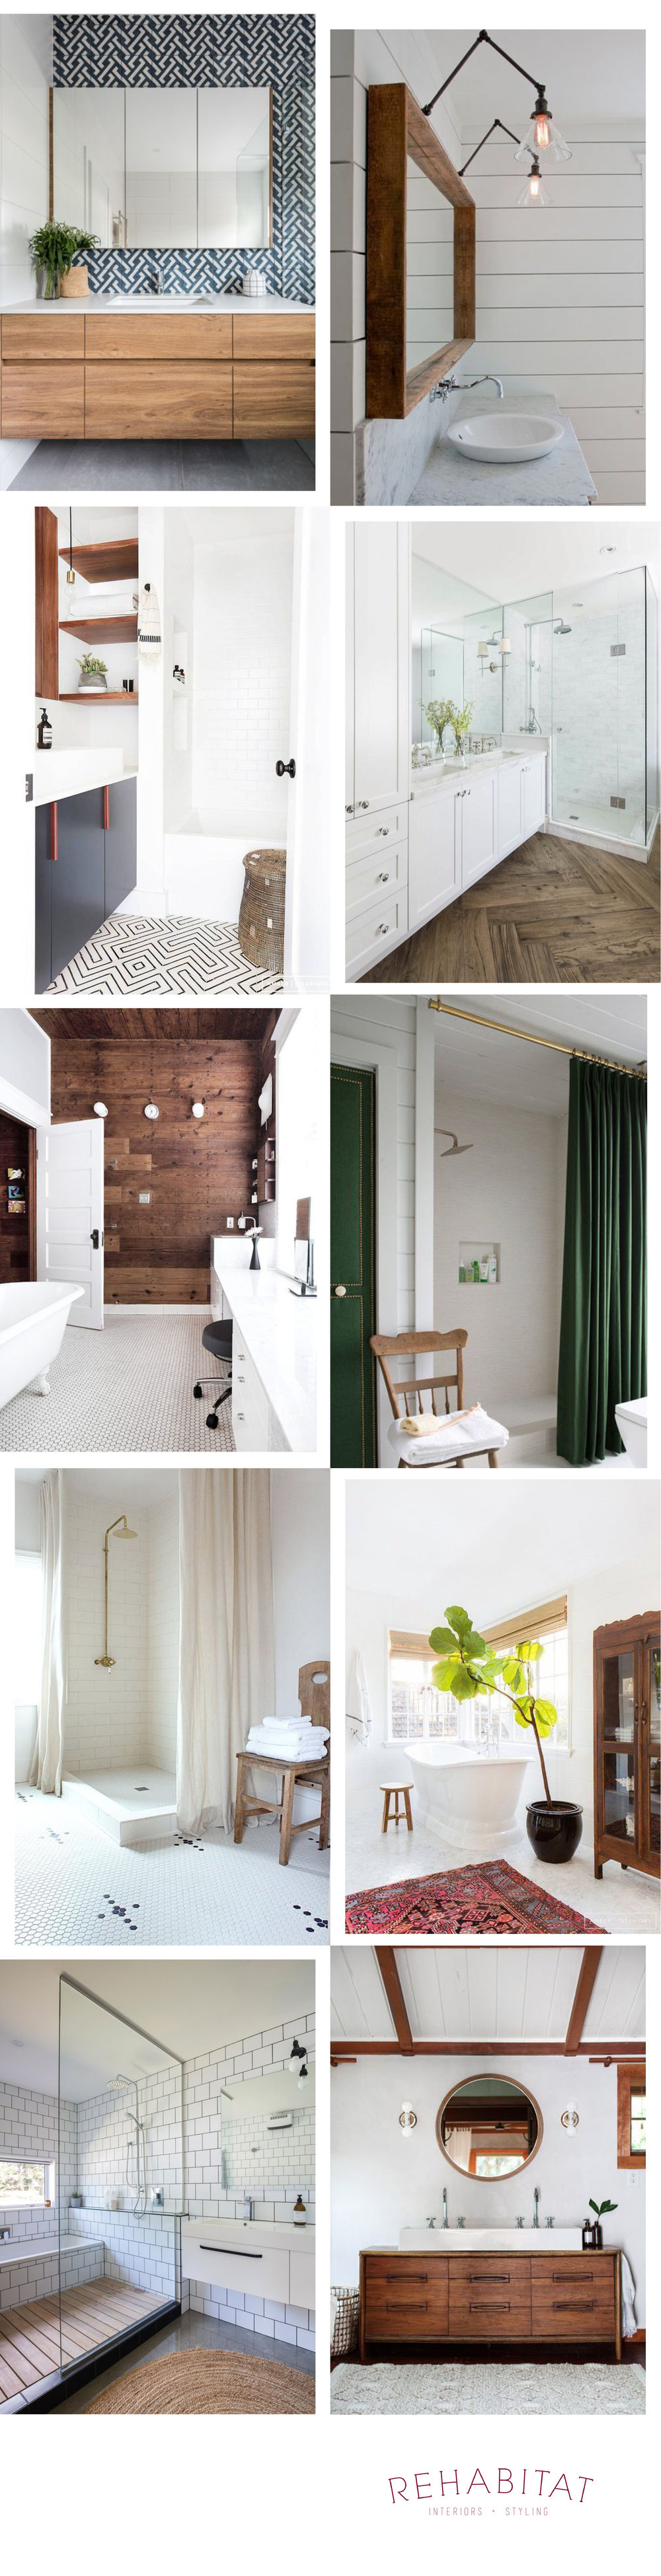 Rehabitiat | Repinned: Wood in the Bathroom | rehabitat-interiors.com